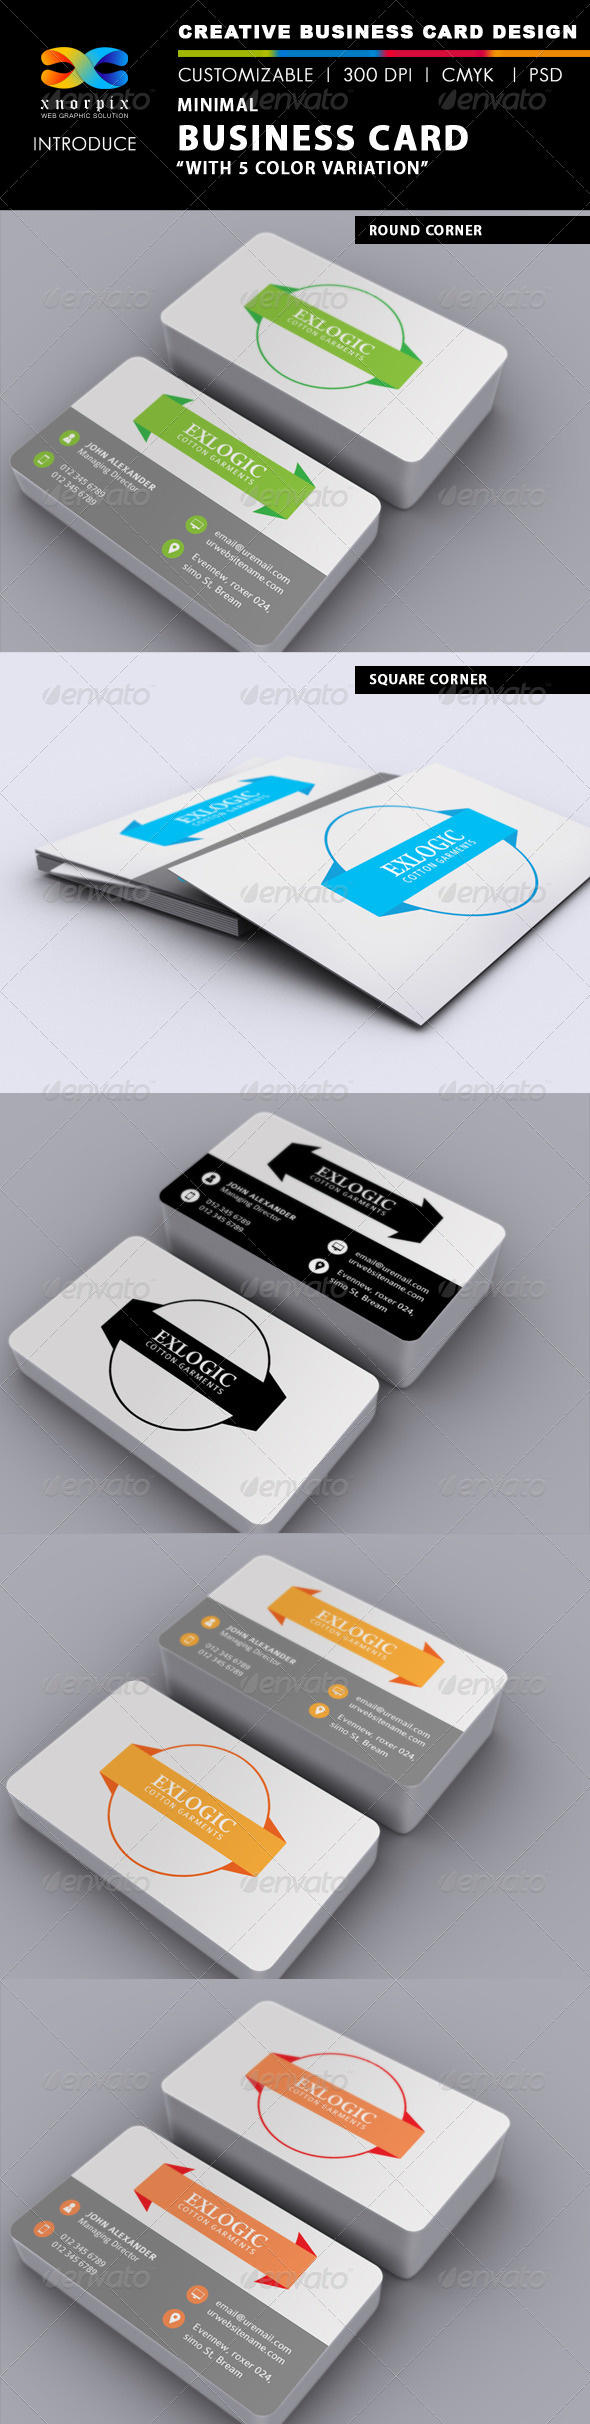 GraphicRiver Minimal Business Card 6675967